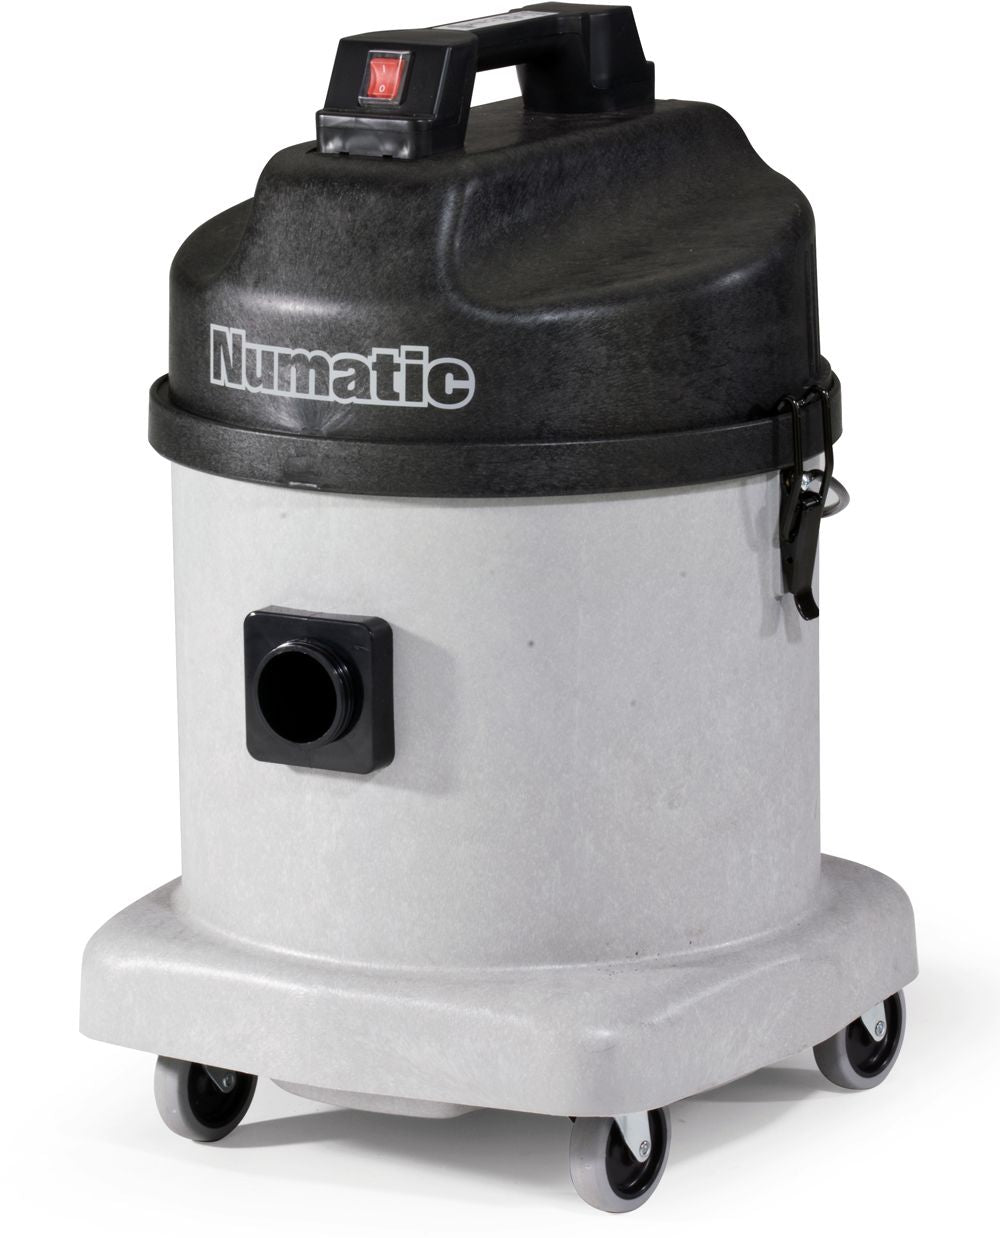 Numatic NDD570 DustCare Fine Dust Vacuum Cleaner